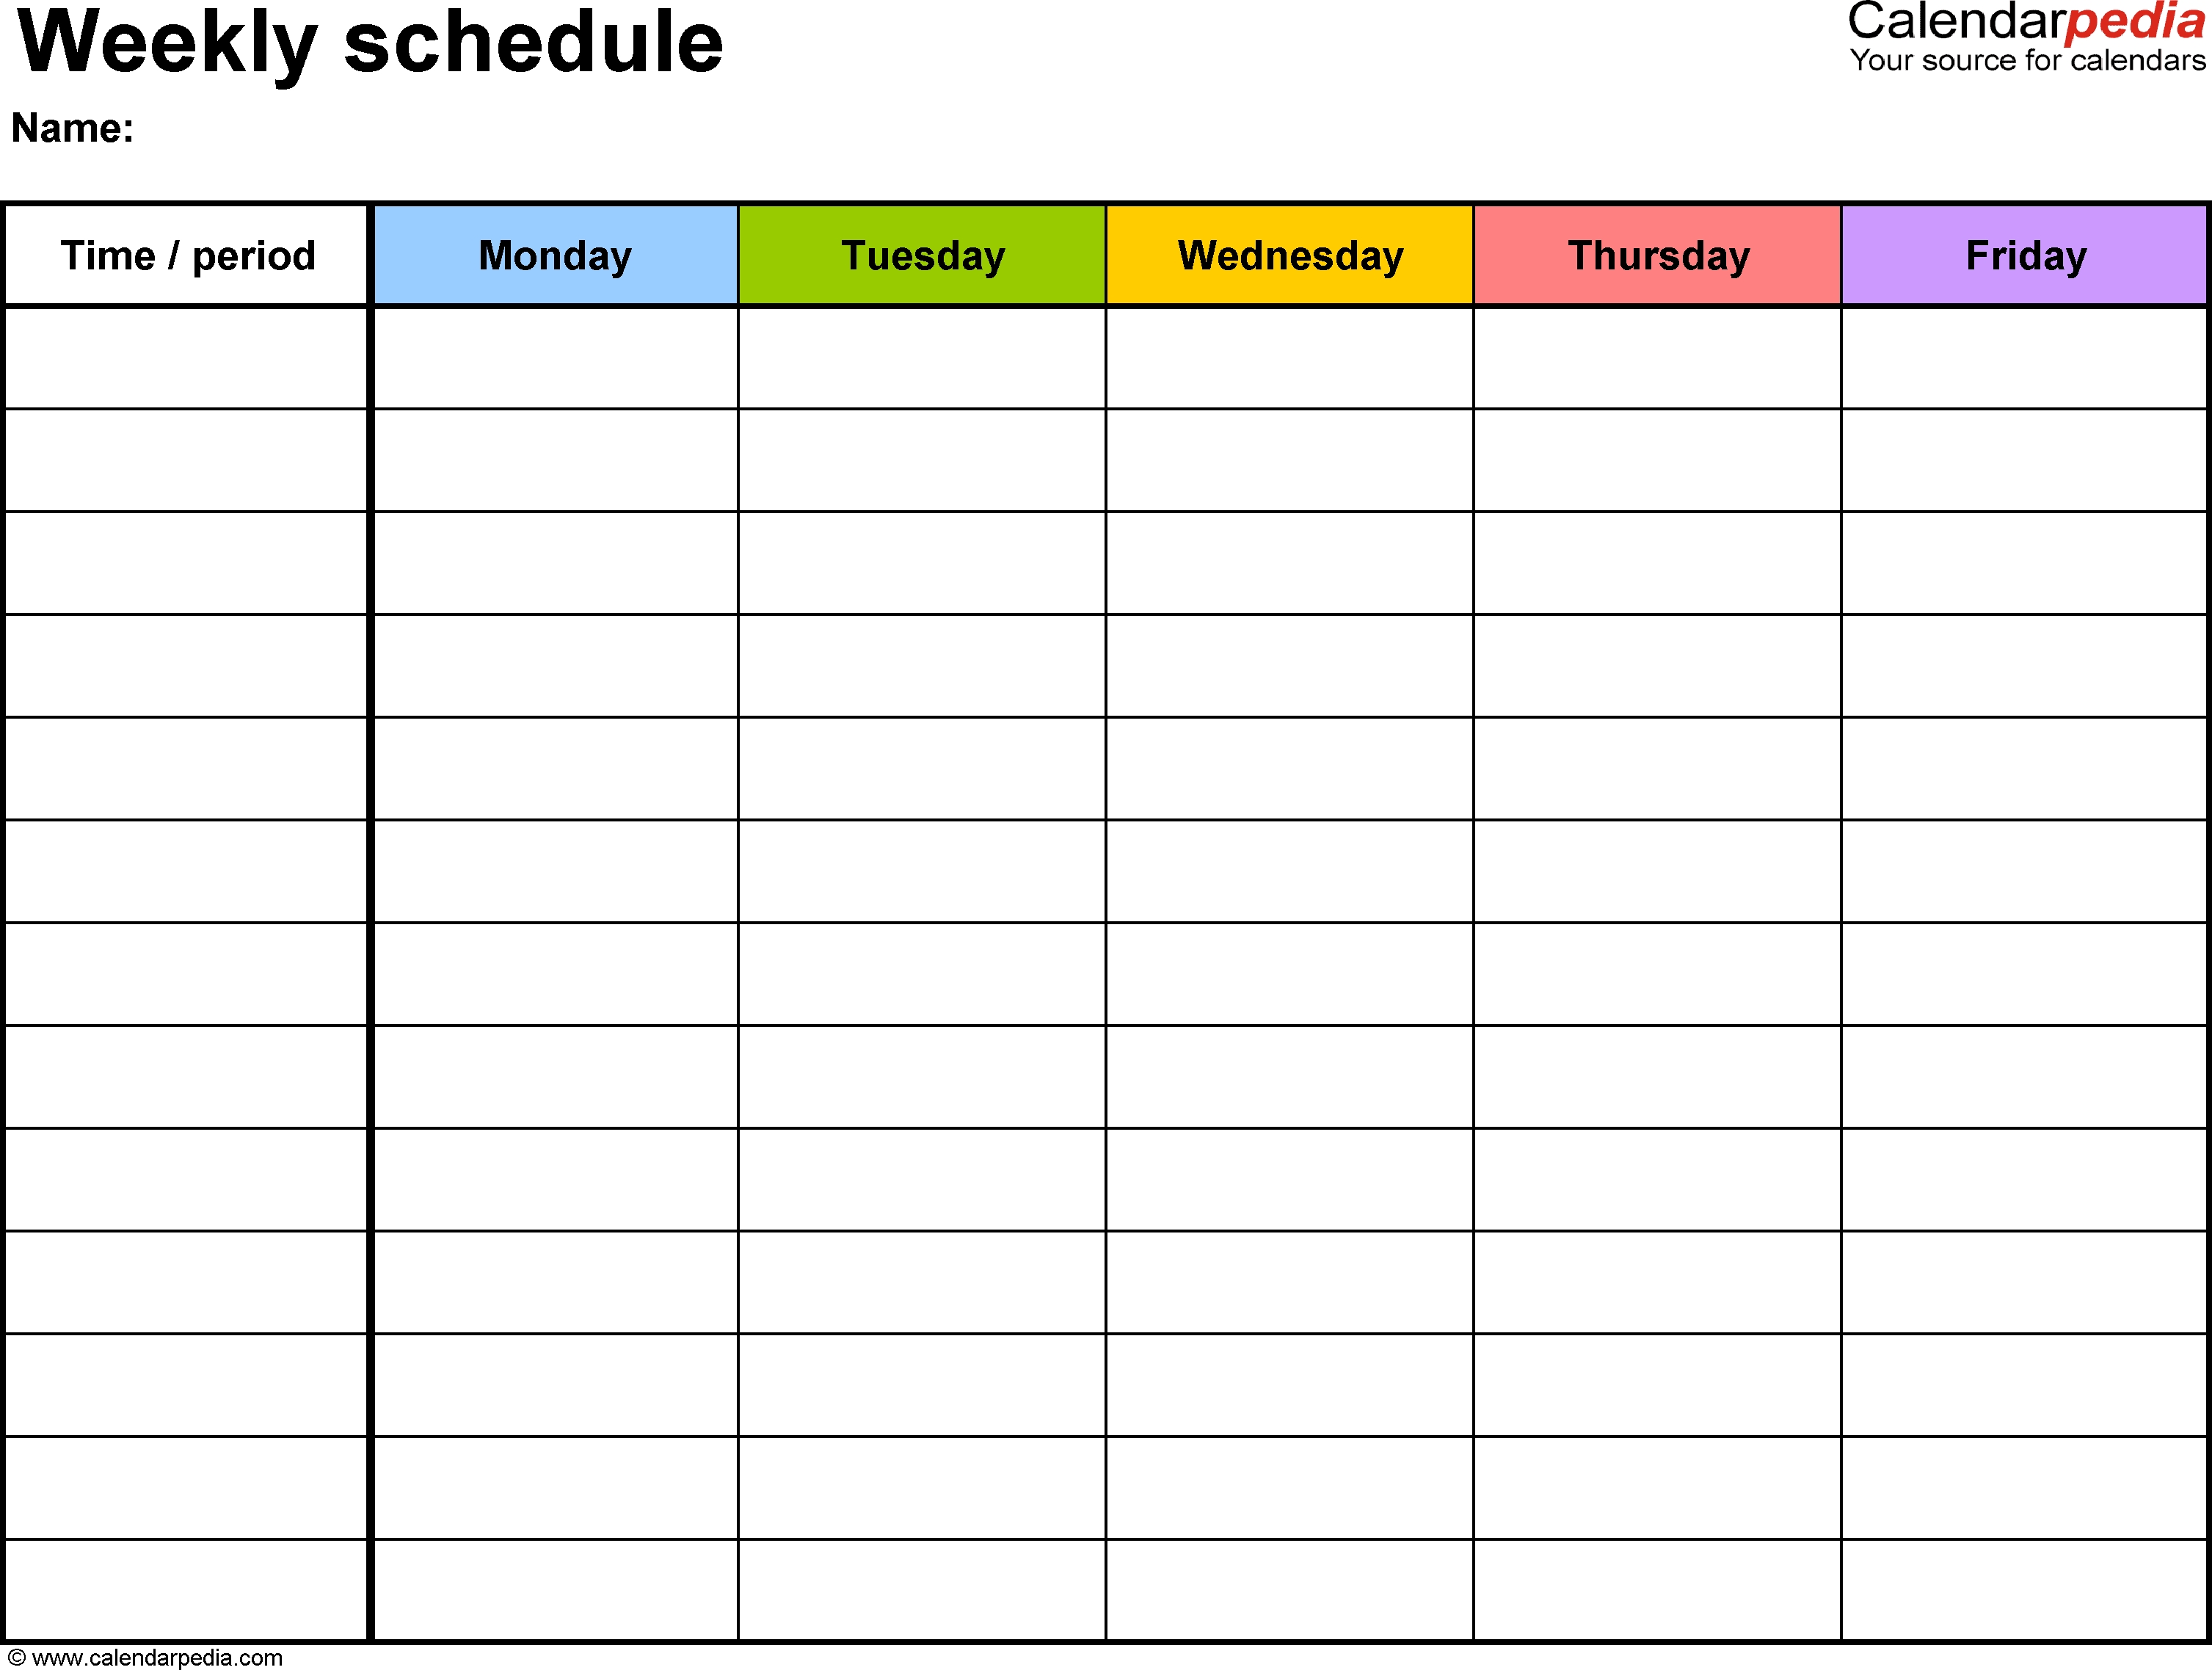 Weekly Schedule Template For Word Version 1: Landscape, 1  Business Monday To Friday Daily Planner